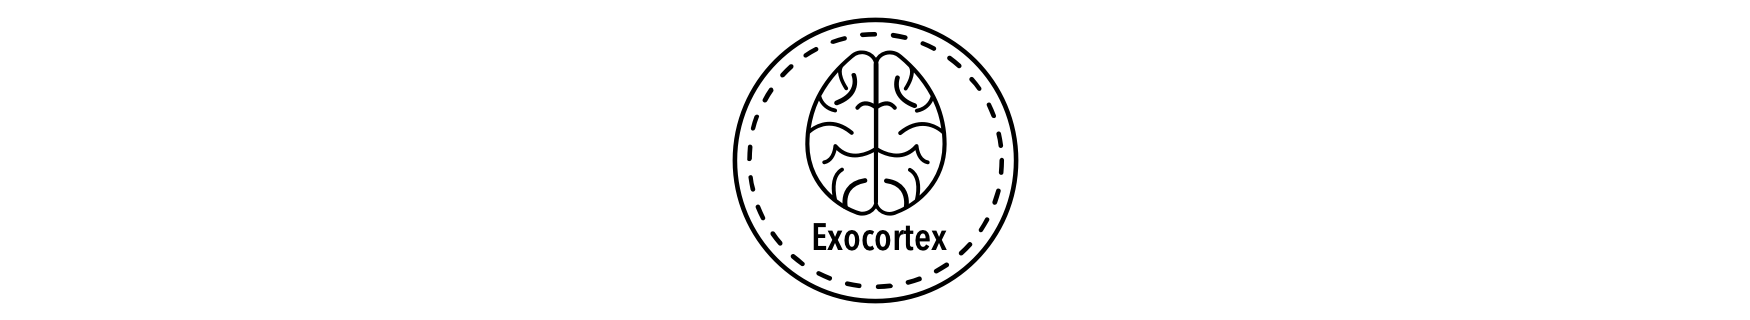 Exocortex Logo